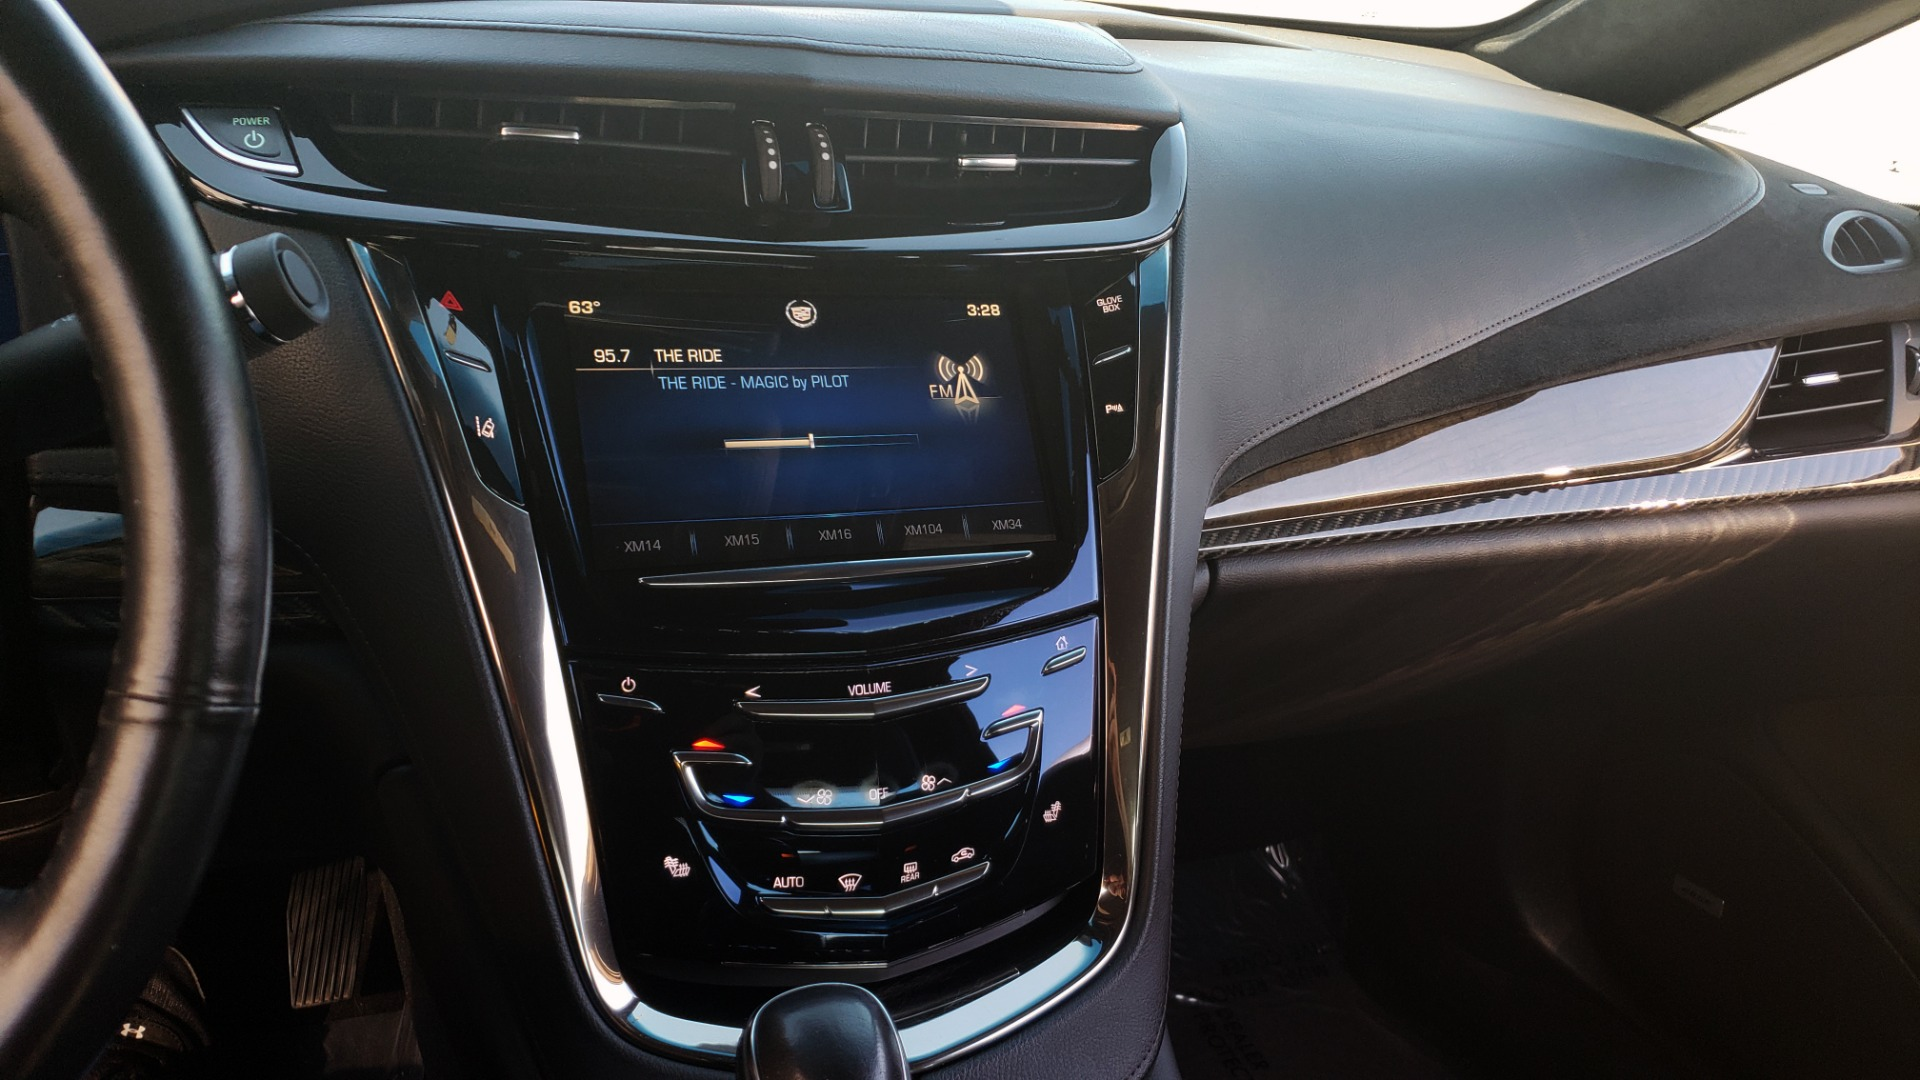 Used 2014 Cadillac ELR 2DR COUPE / HYBRID / NAV / BOSE / HEATED SEATS / REARVIEW for sale $19,995 at Formula Imports in Charlotte NC 28227 45